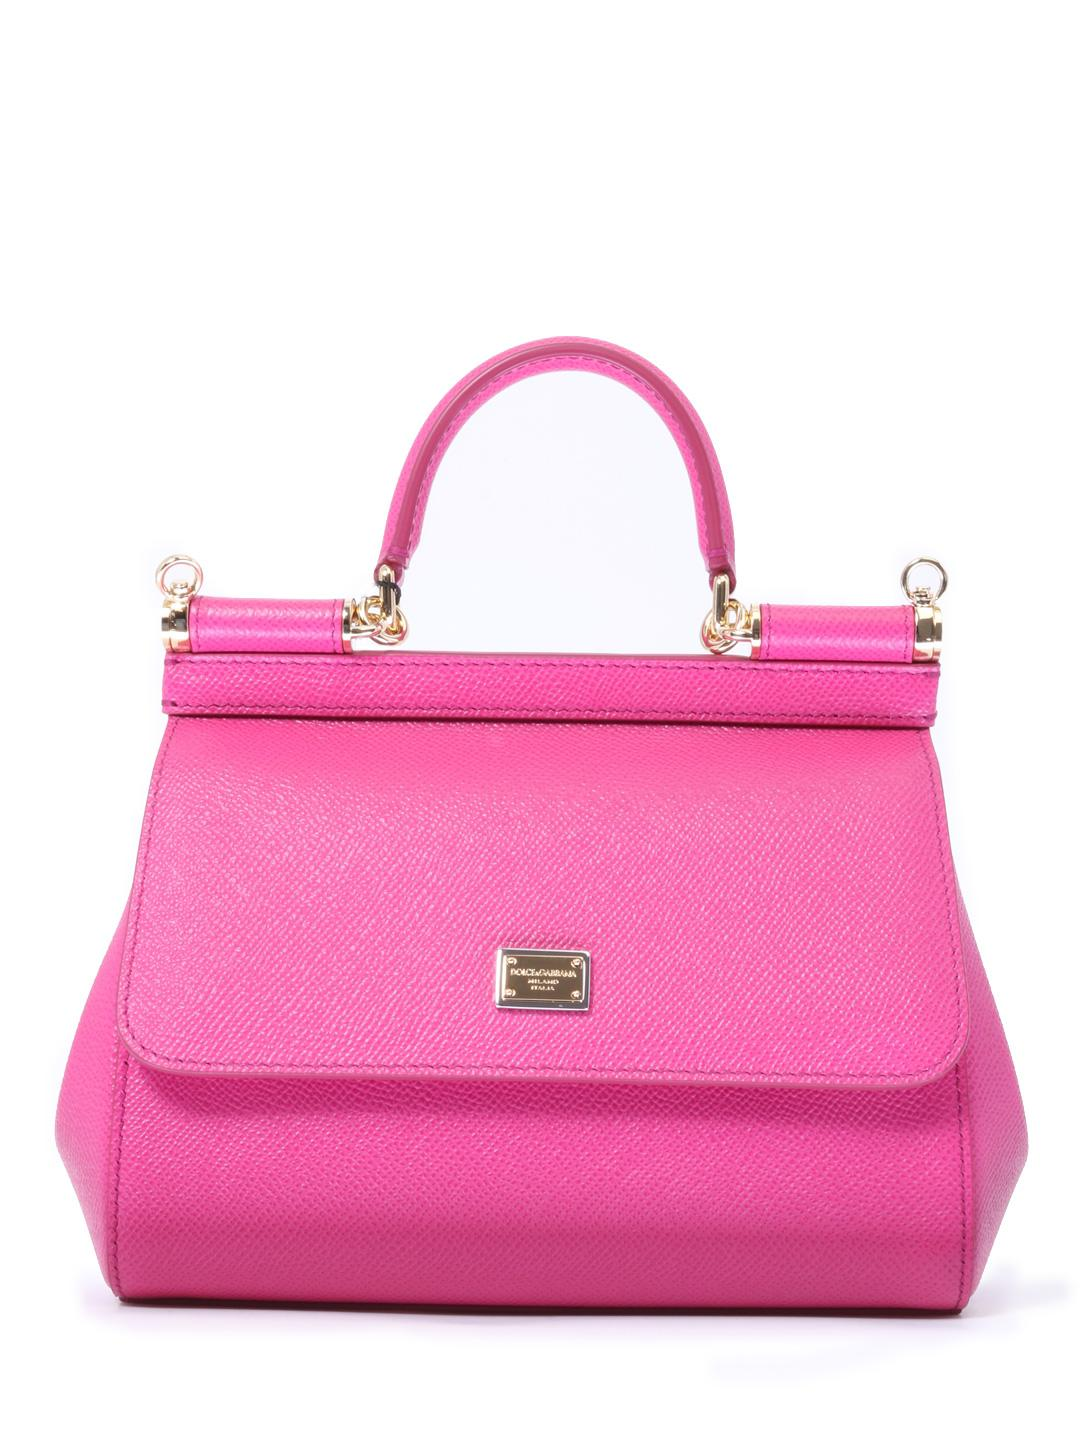 804499c046cd Lyst - Dolce   Gabbana Sicily Small Bag Fuchsia in Pink